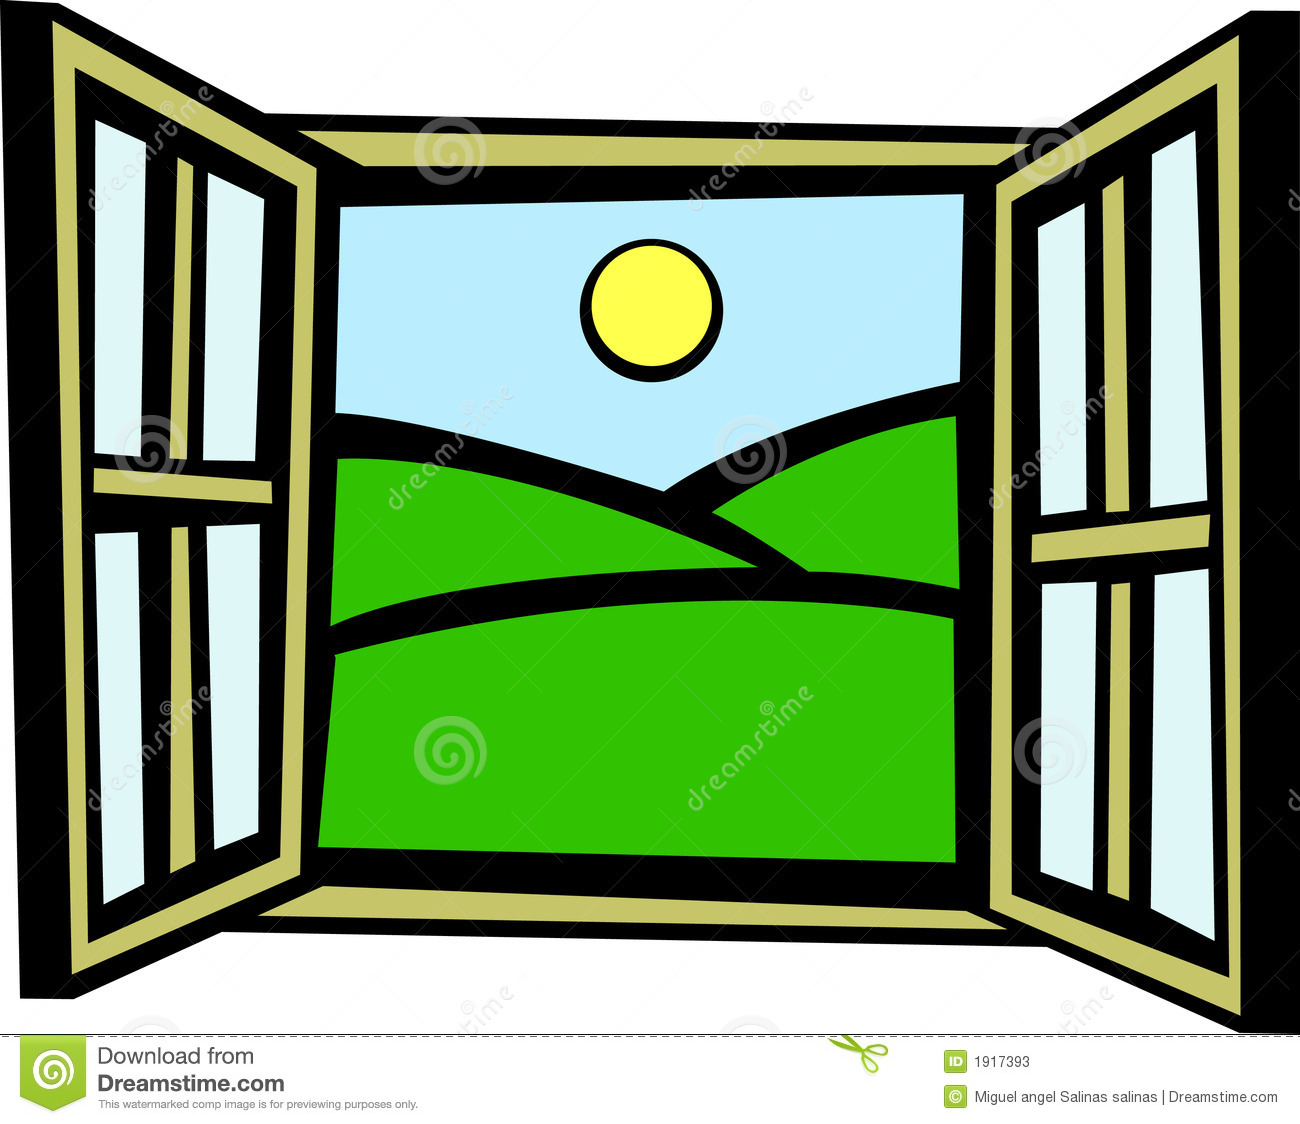 Window clipart. Outside panda free images